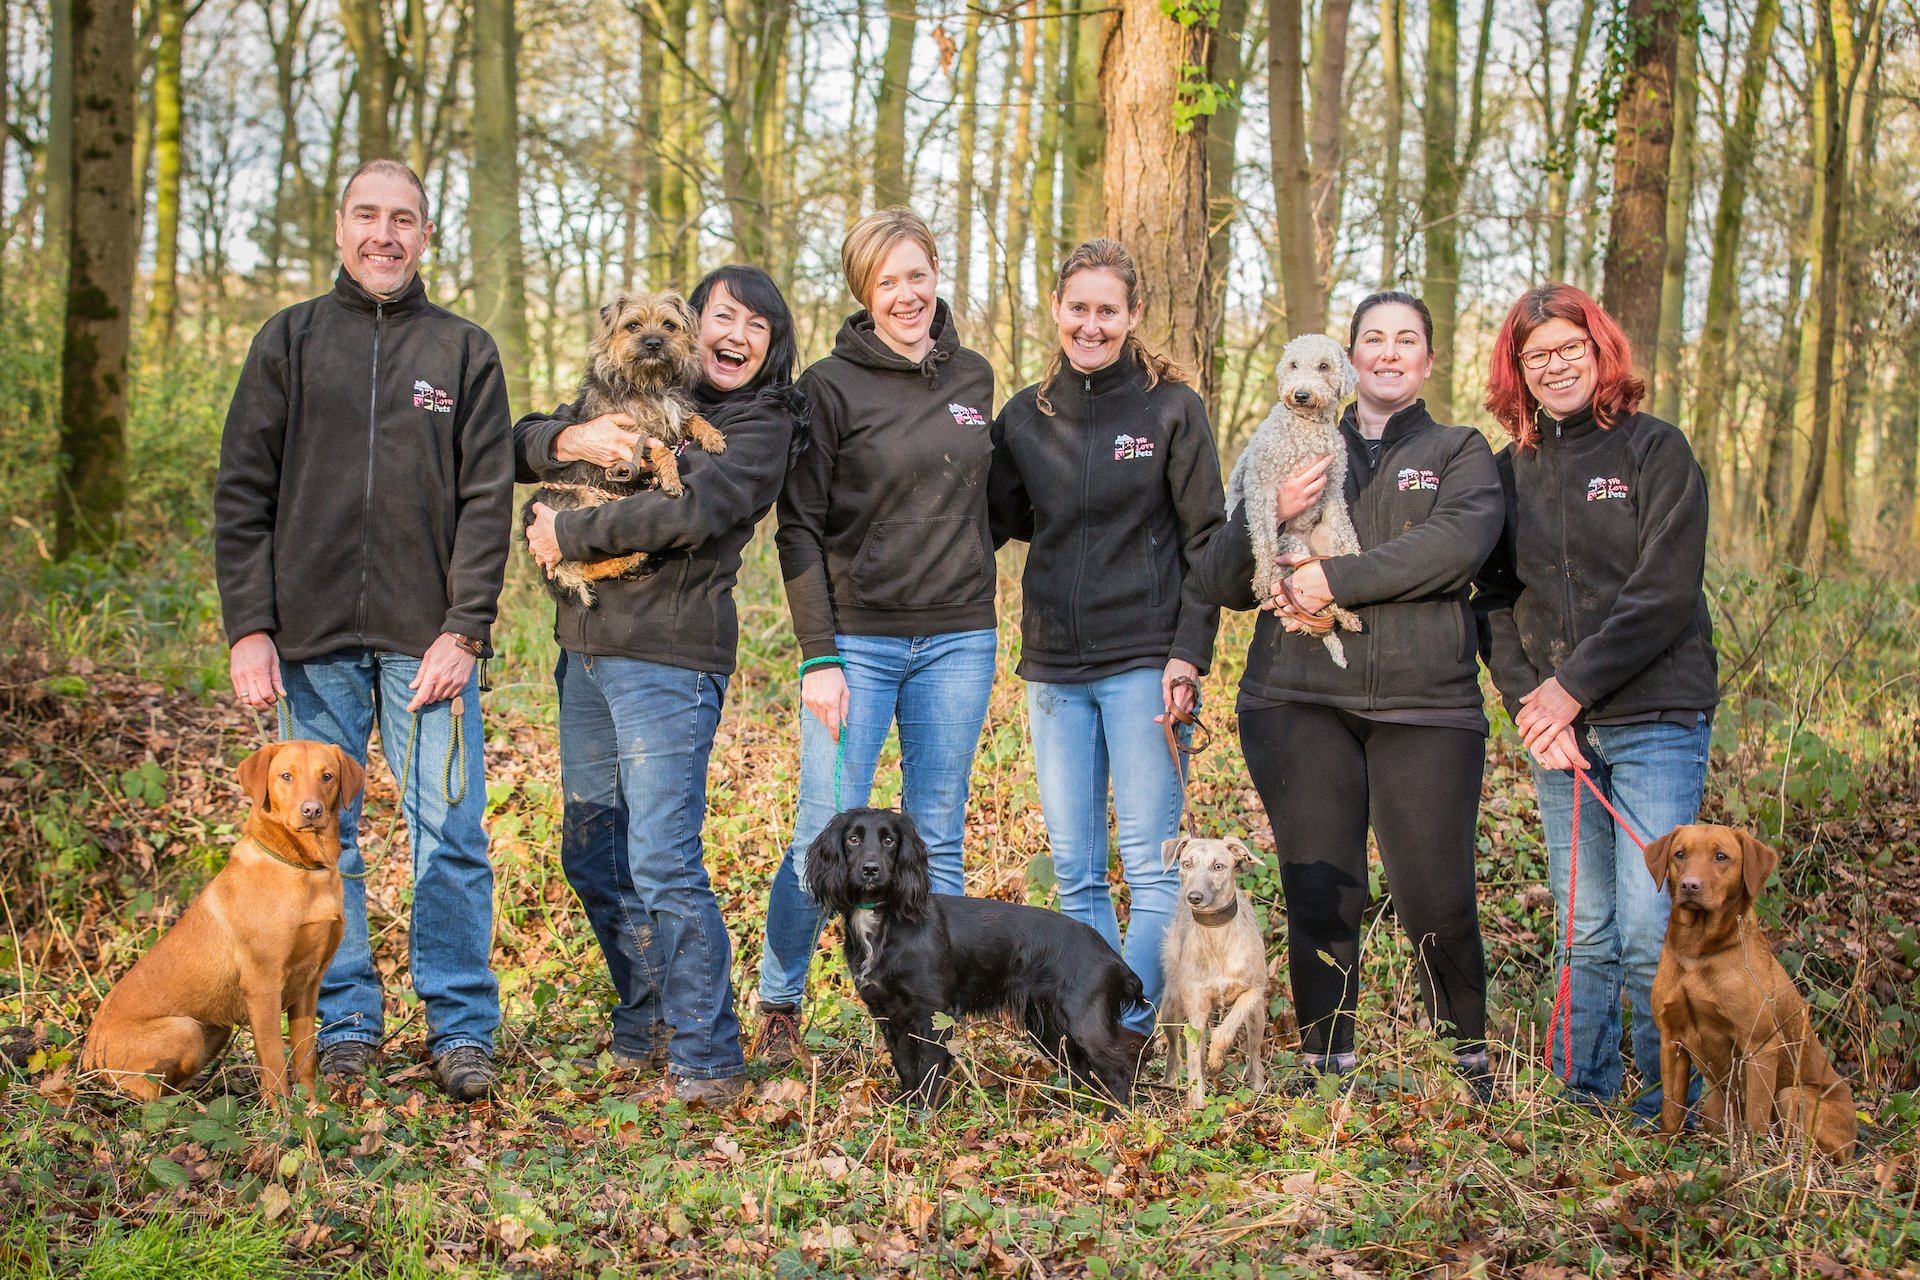 Join a team of pet sitters